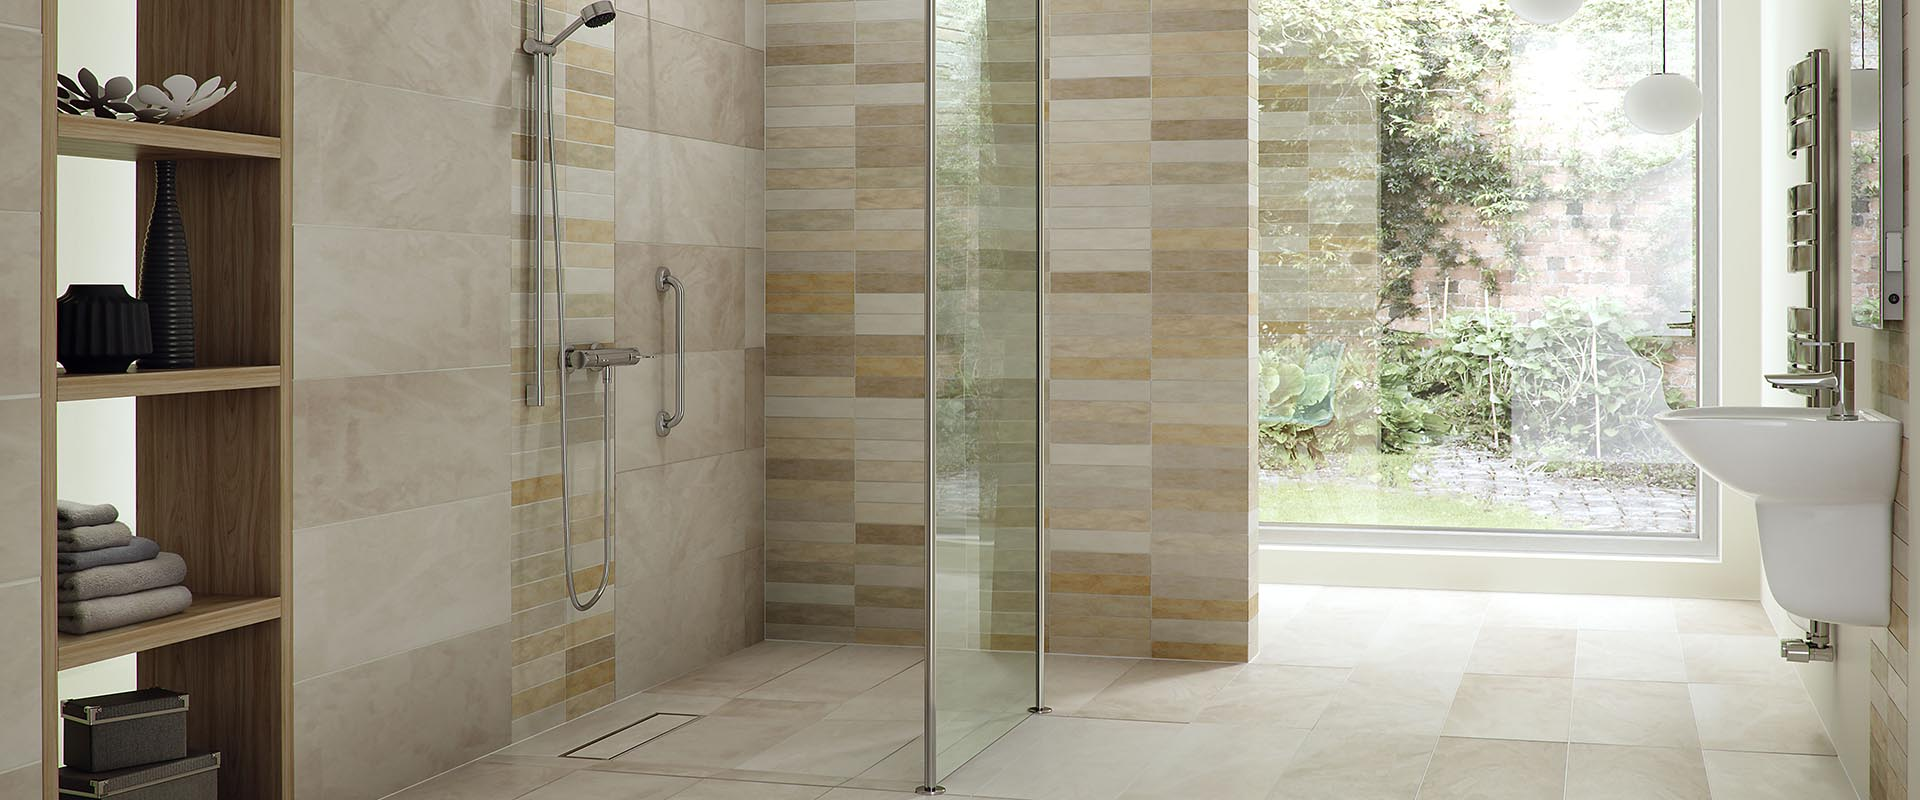 Professional Bathroom Renovations and Cost in Canberra, ACT